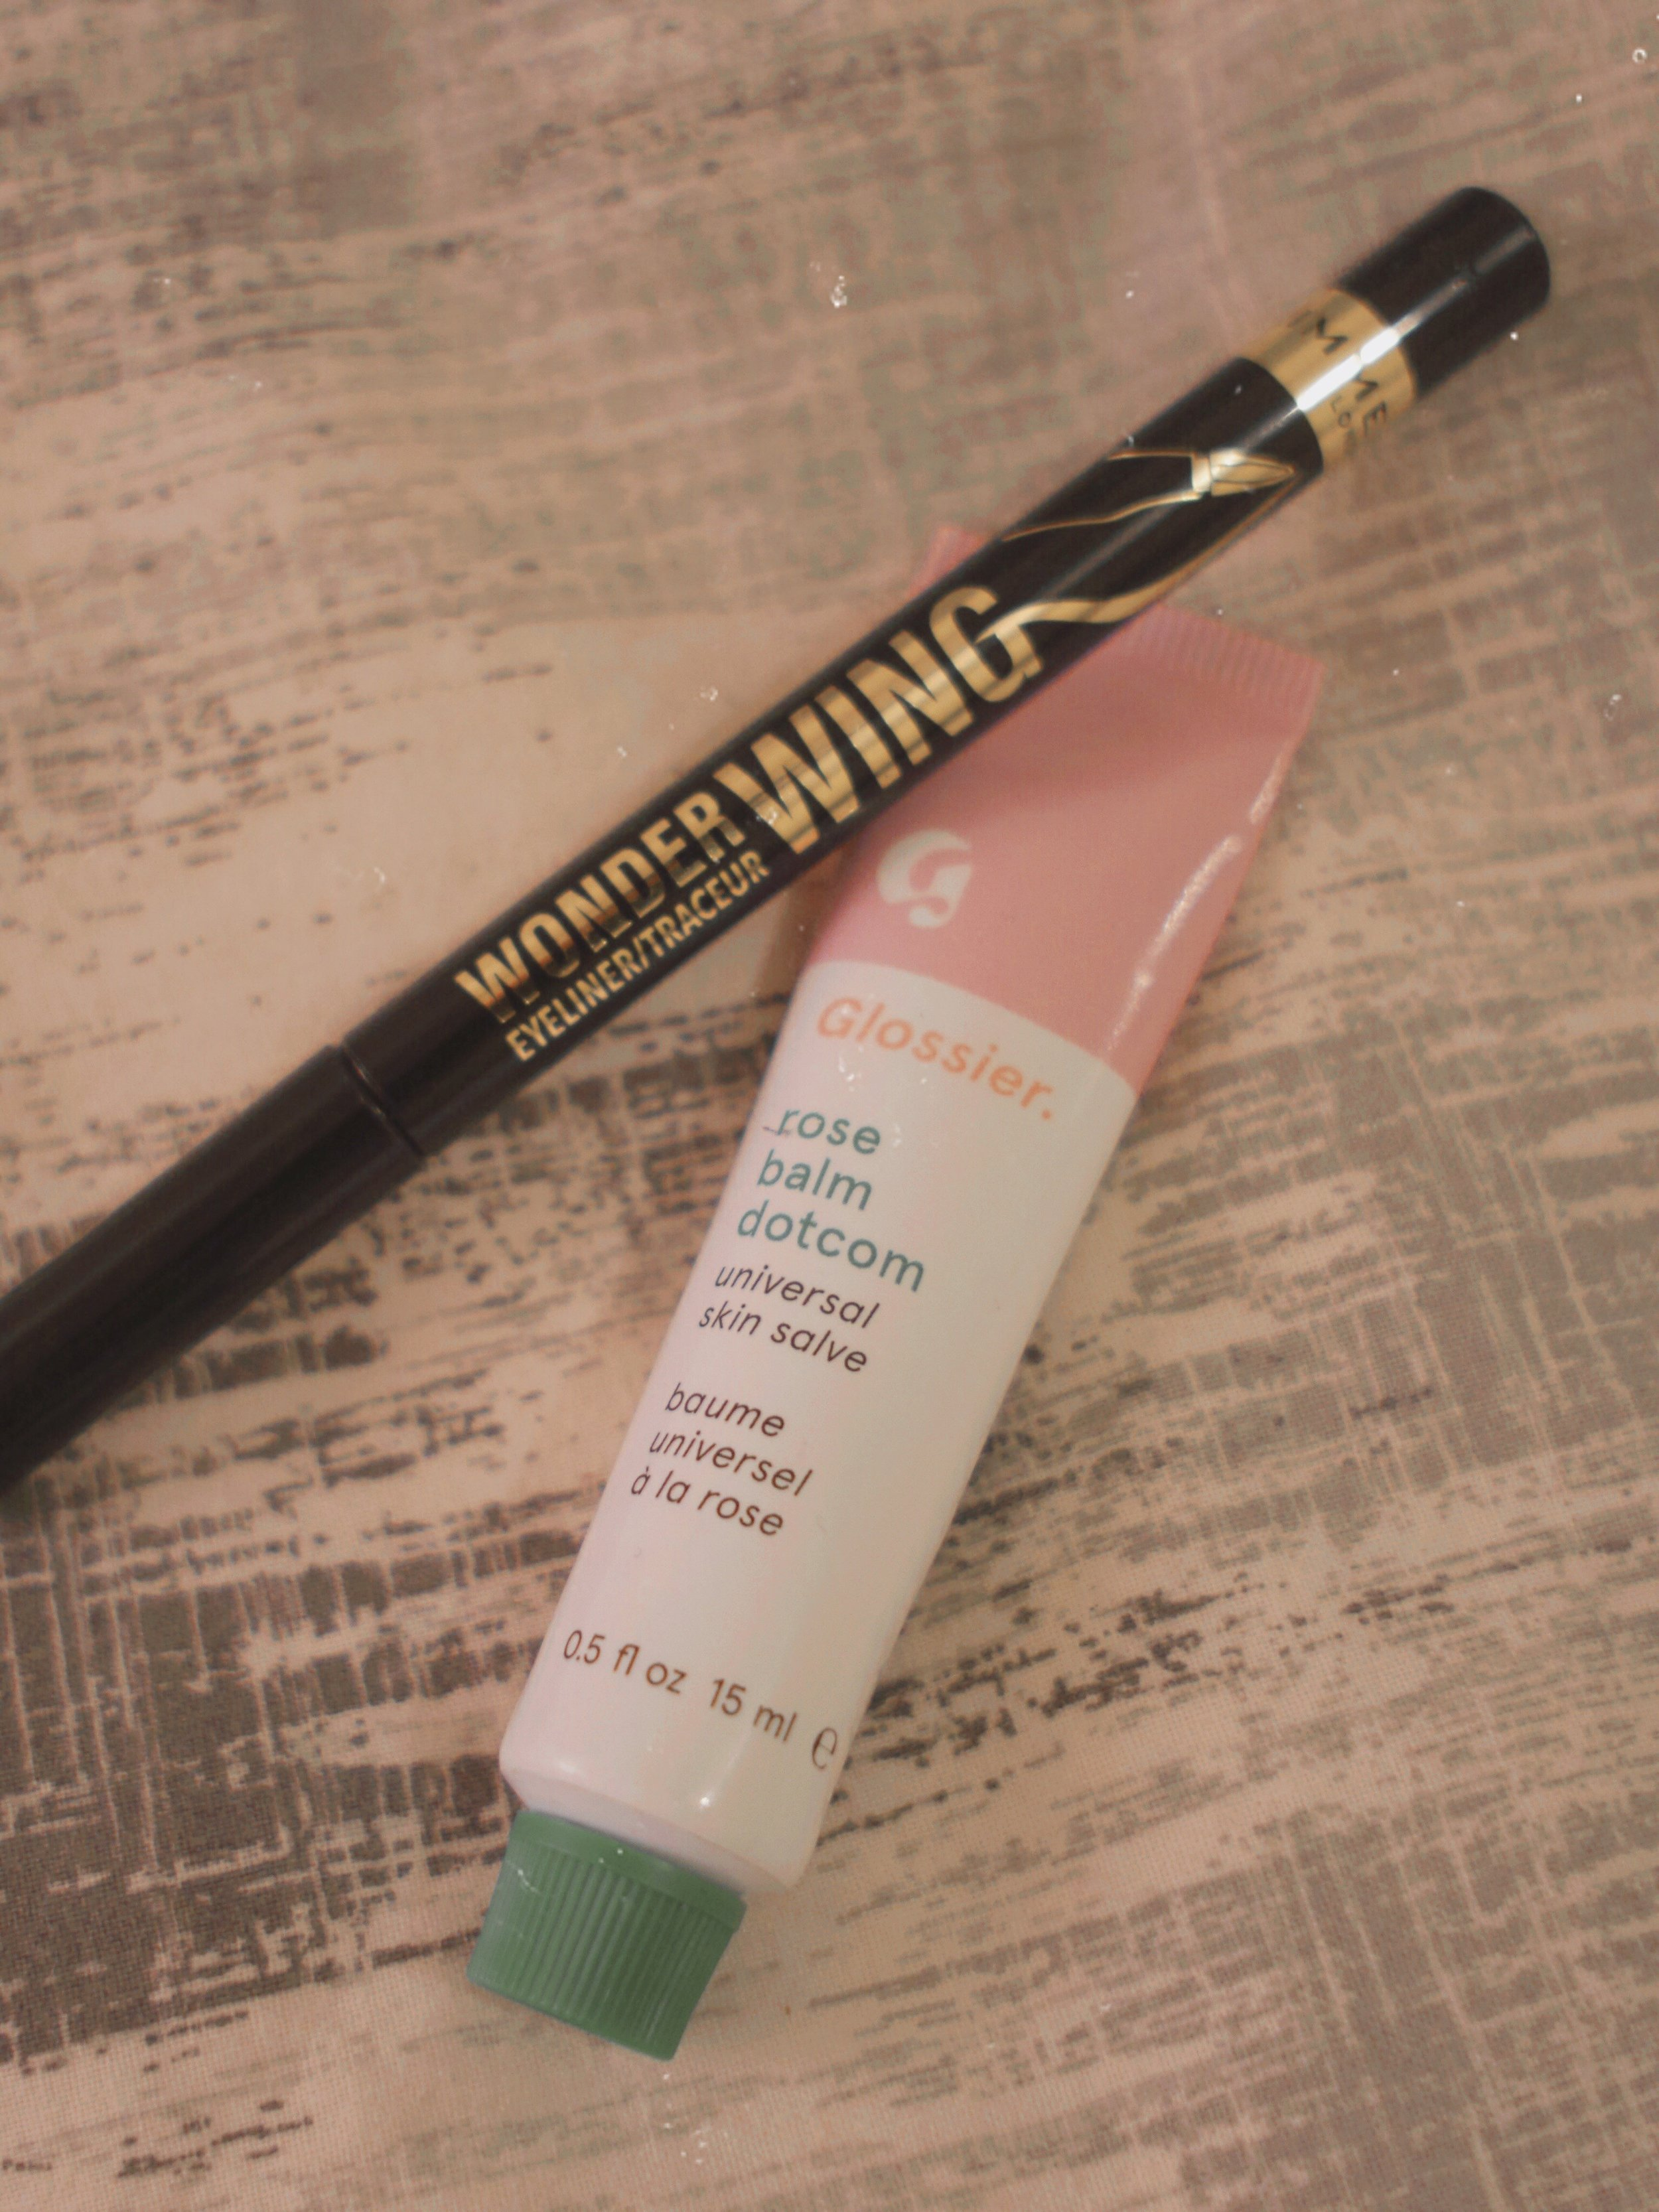 Rimmel Wonderwing and Glossier Rose Balm Dotcom